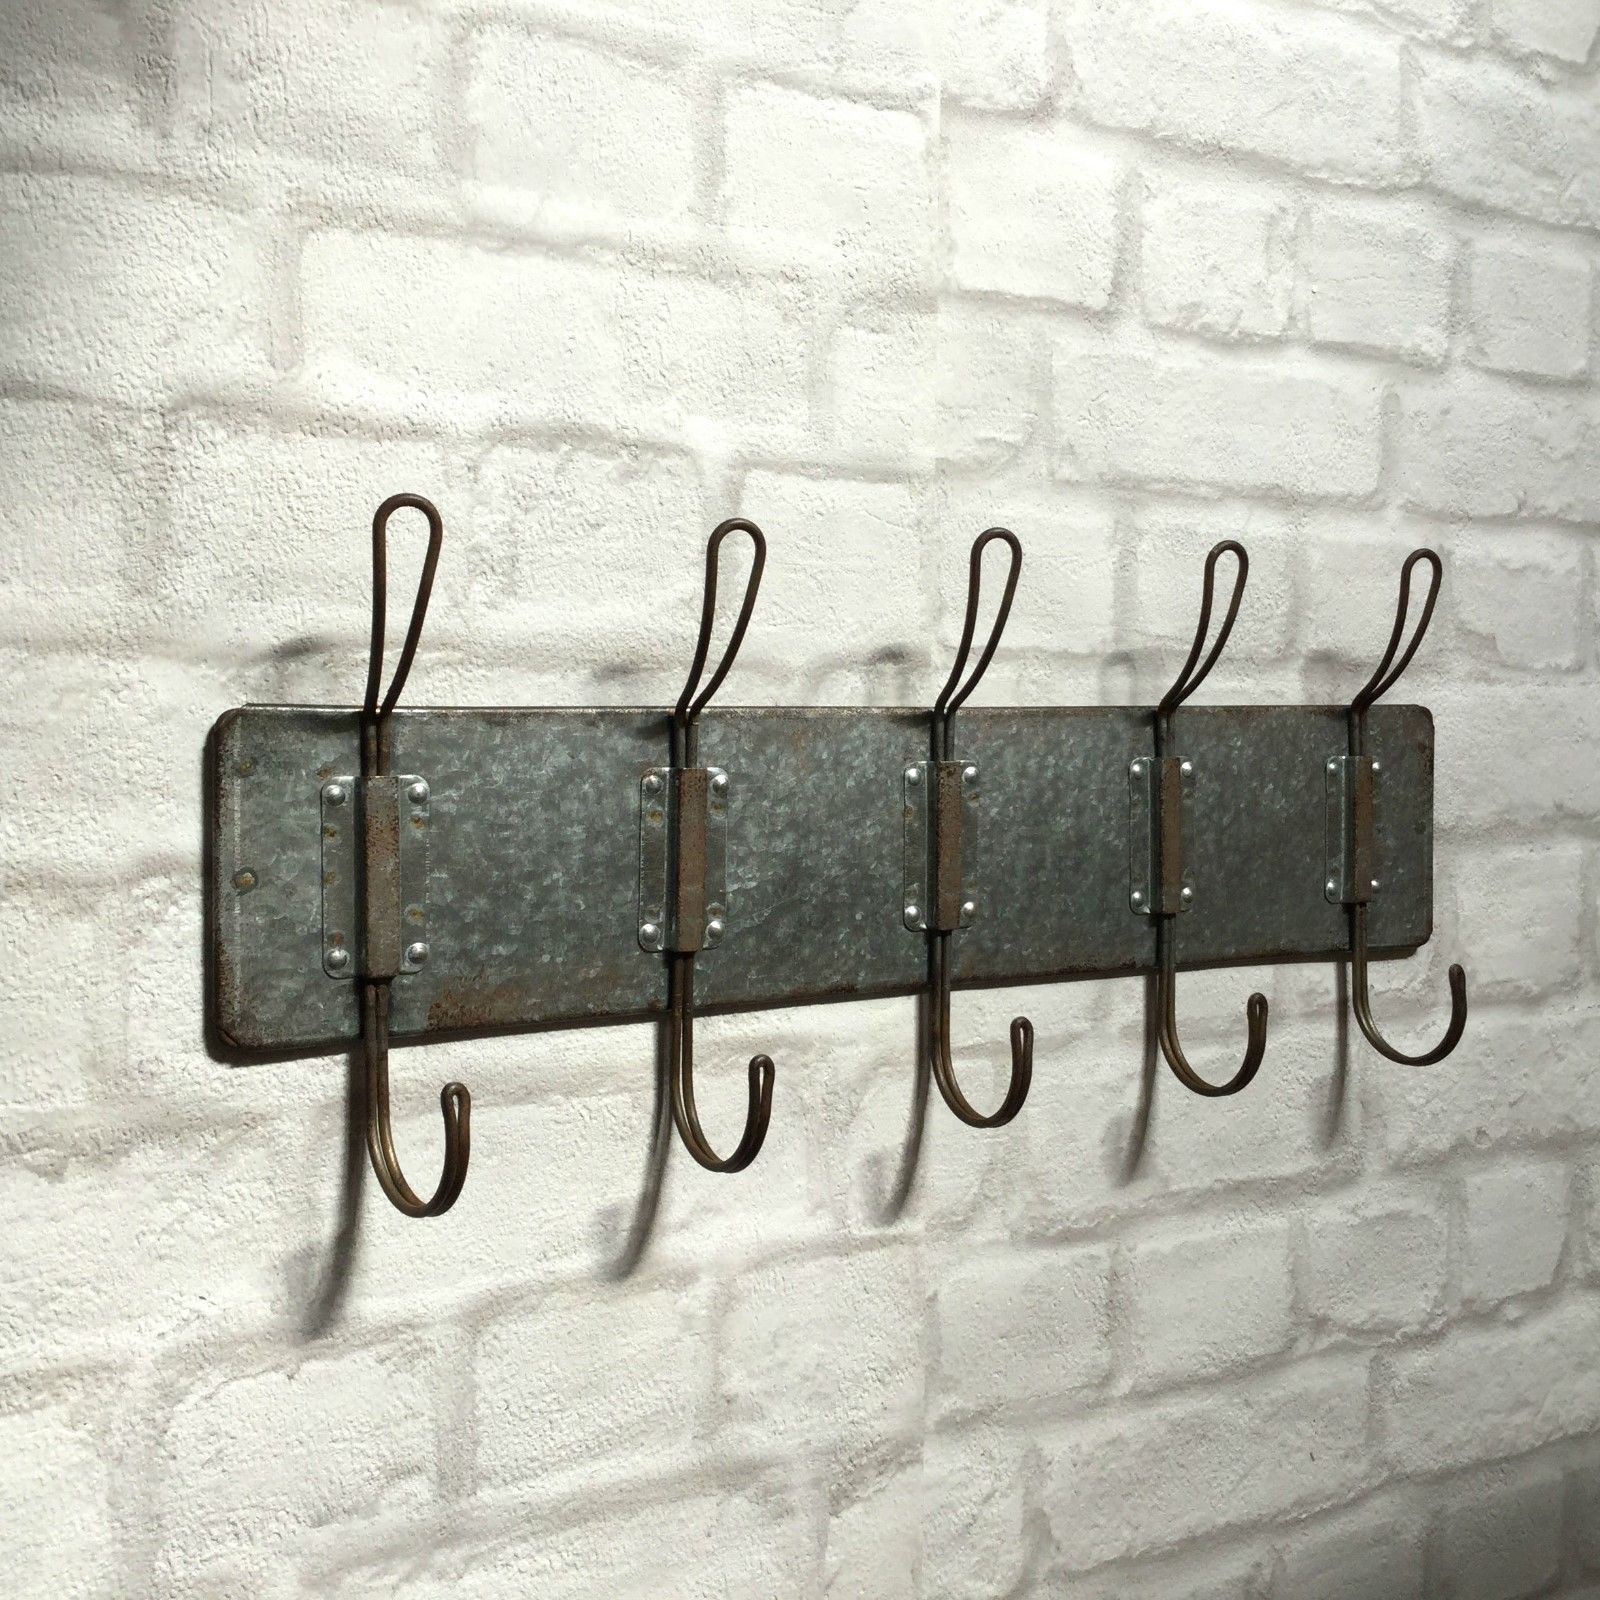 Old Fashioned Wall Hooks Vintage Industrial Style Wall Mounted Coat Hooks Rack Pegs